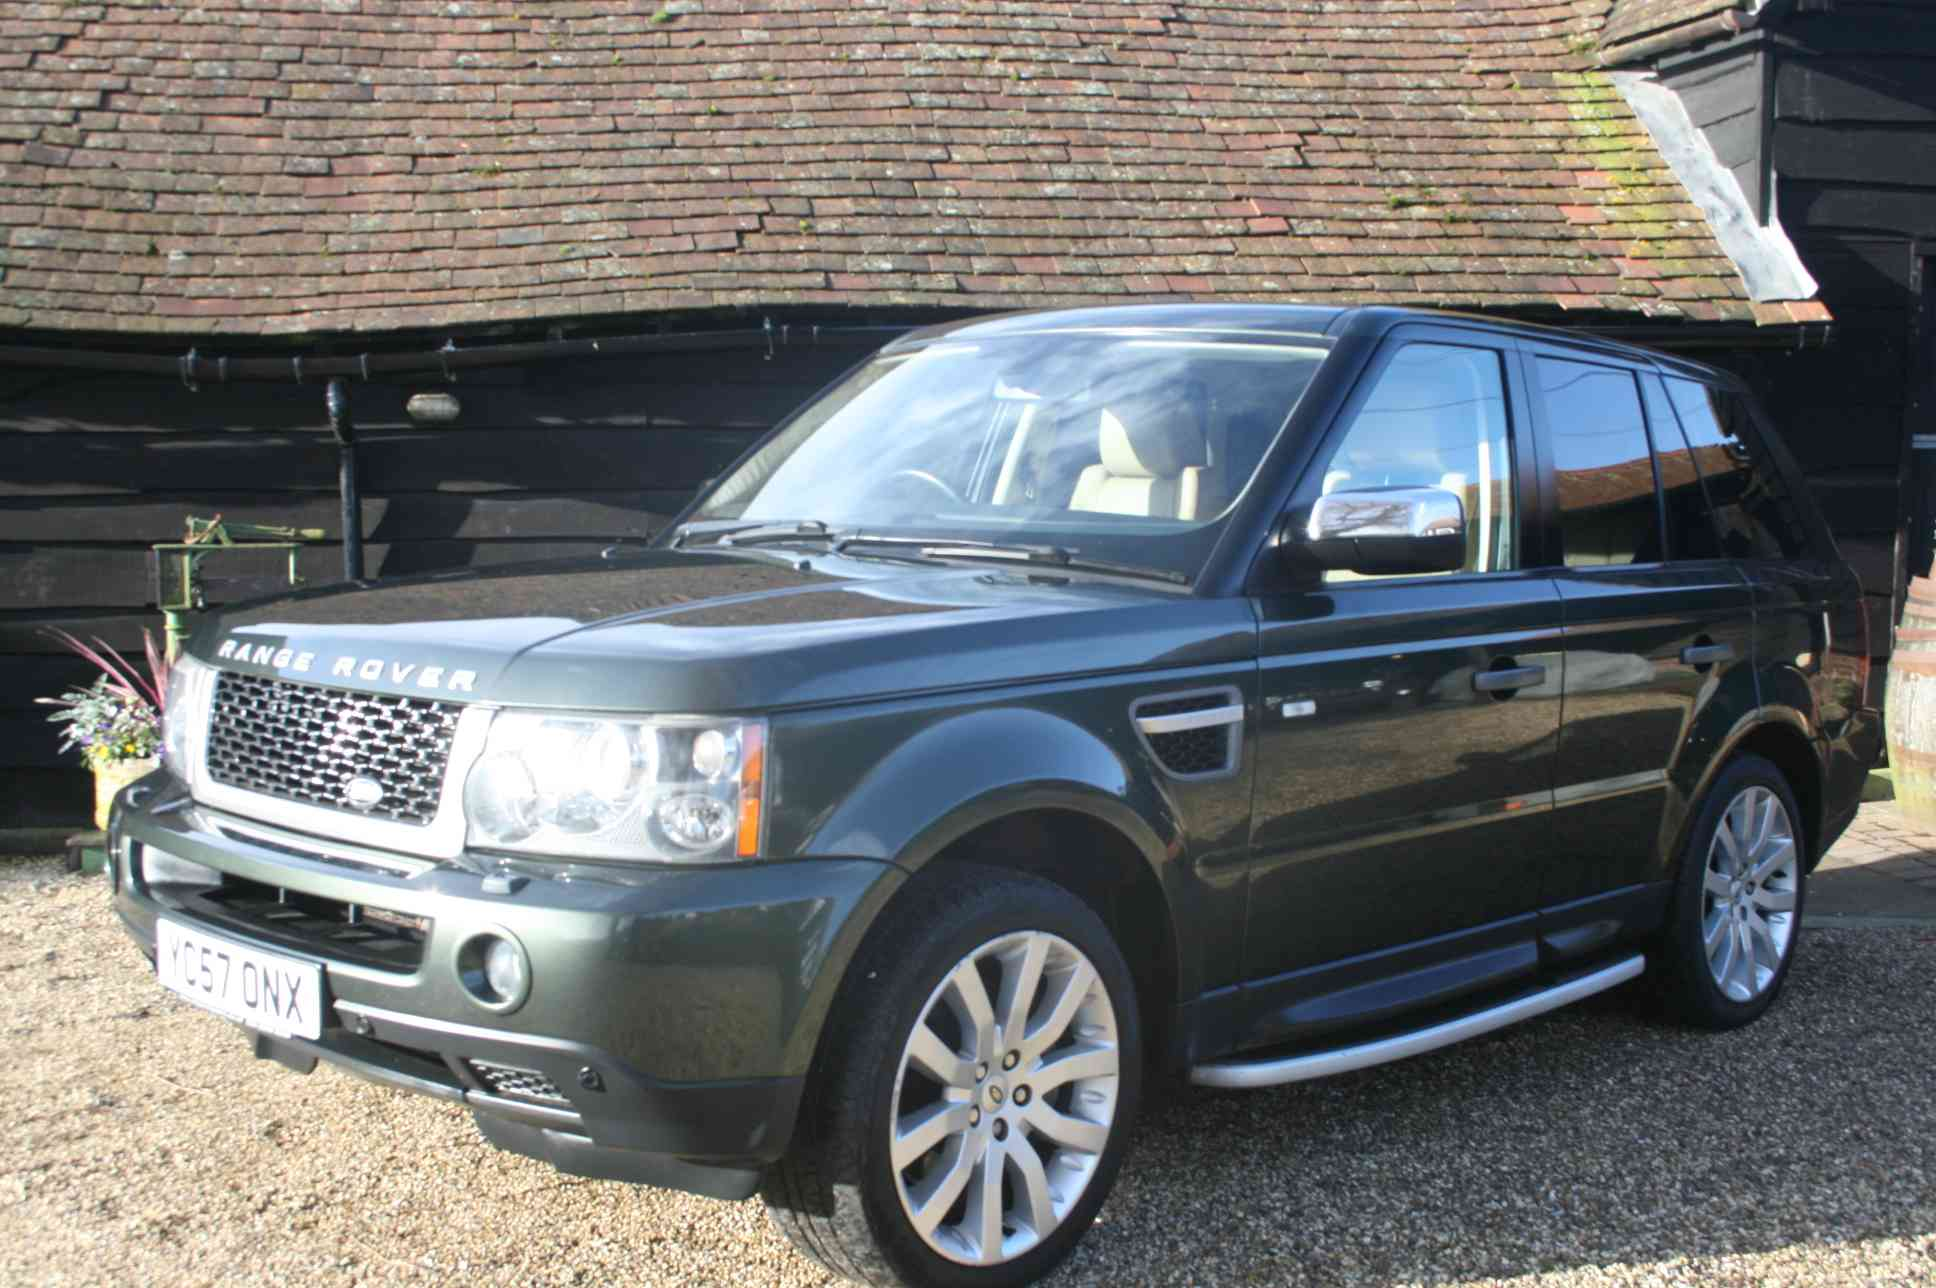 LAND ROVER td hse<br />5 Door Hatchback